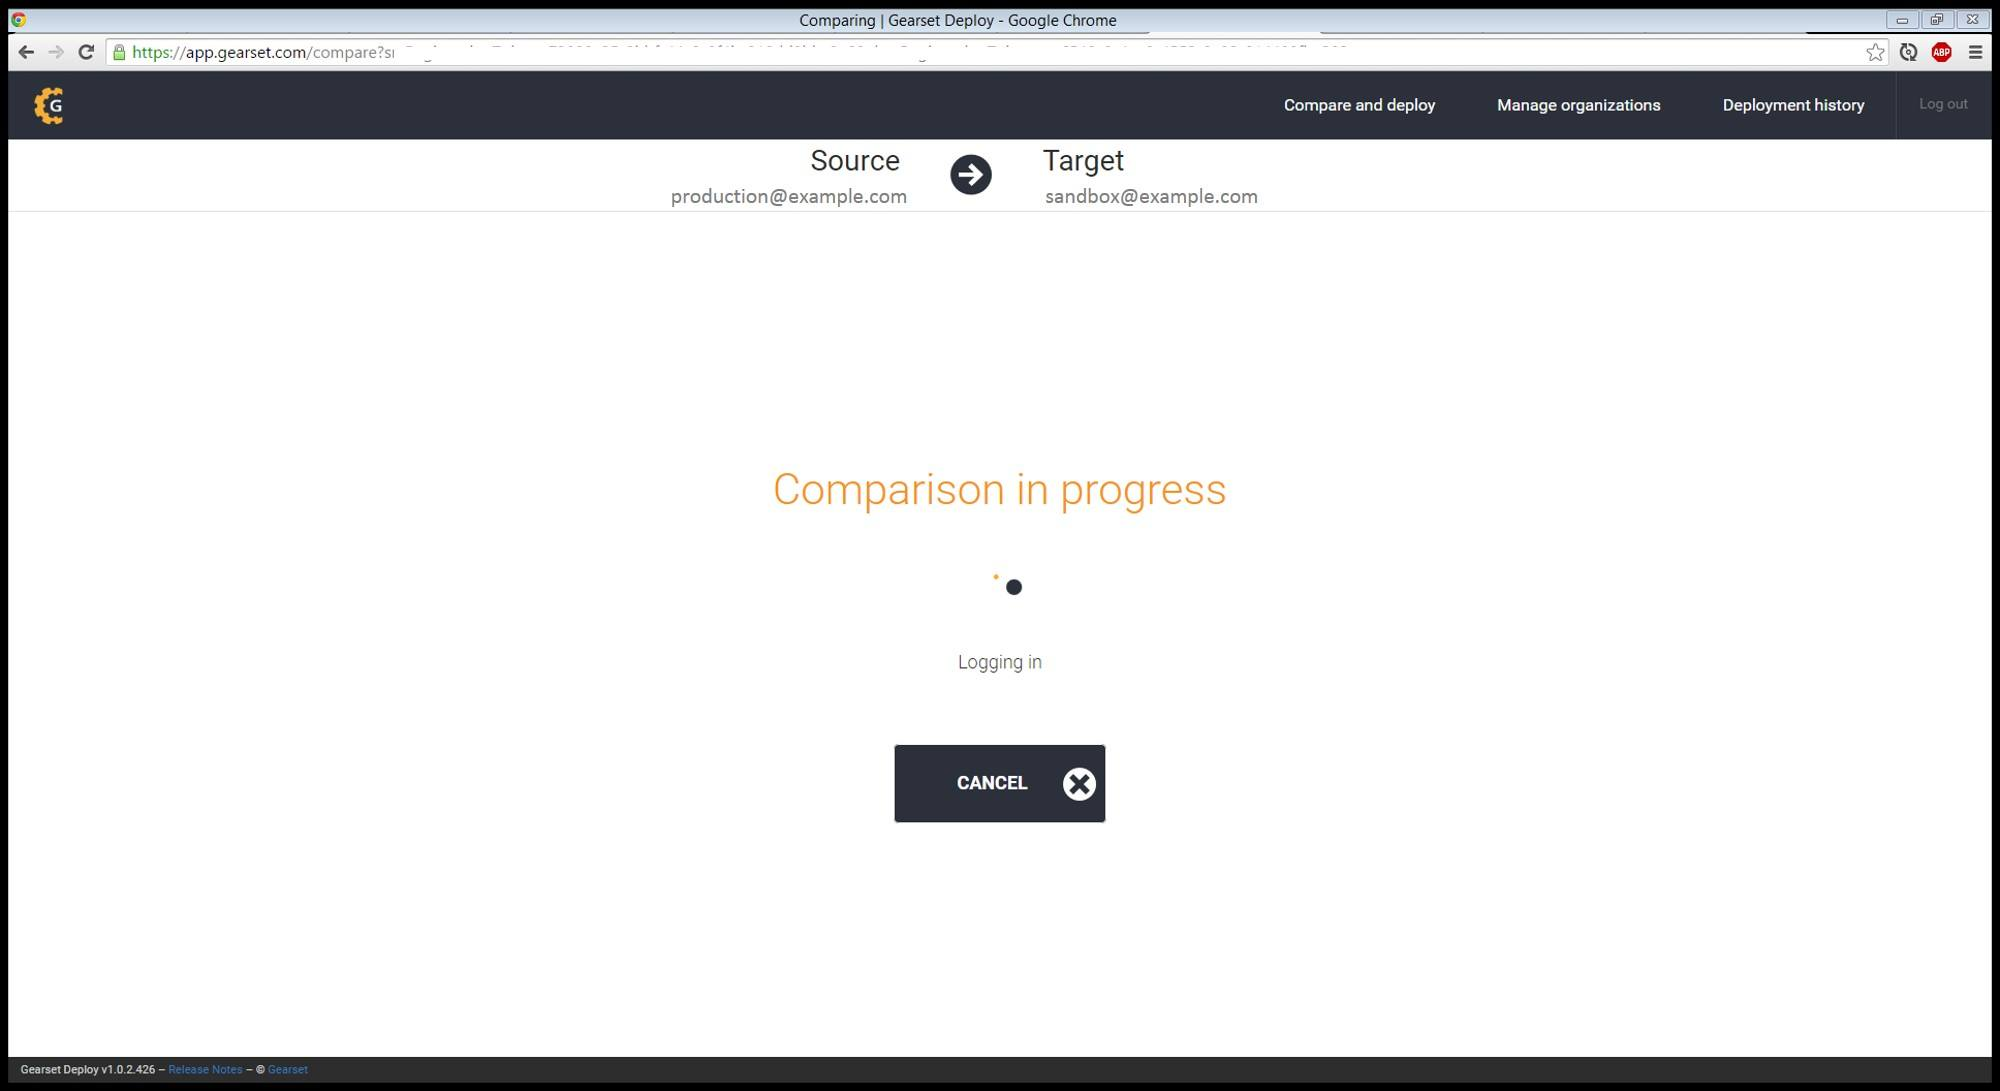 Click compare now to begin the comparison between your orgs